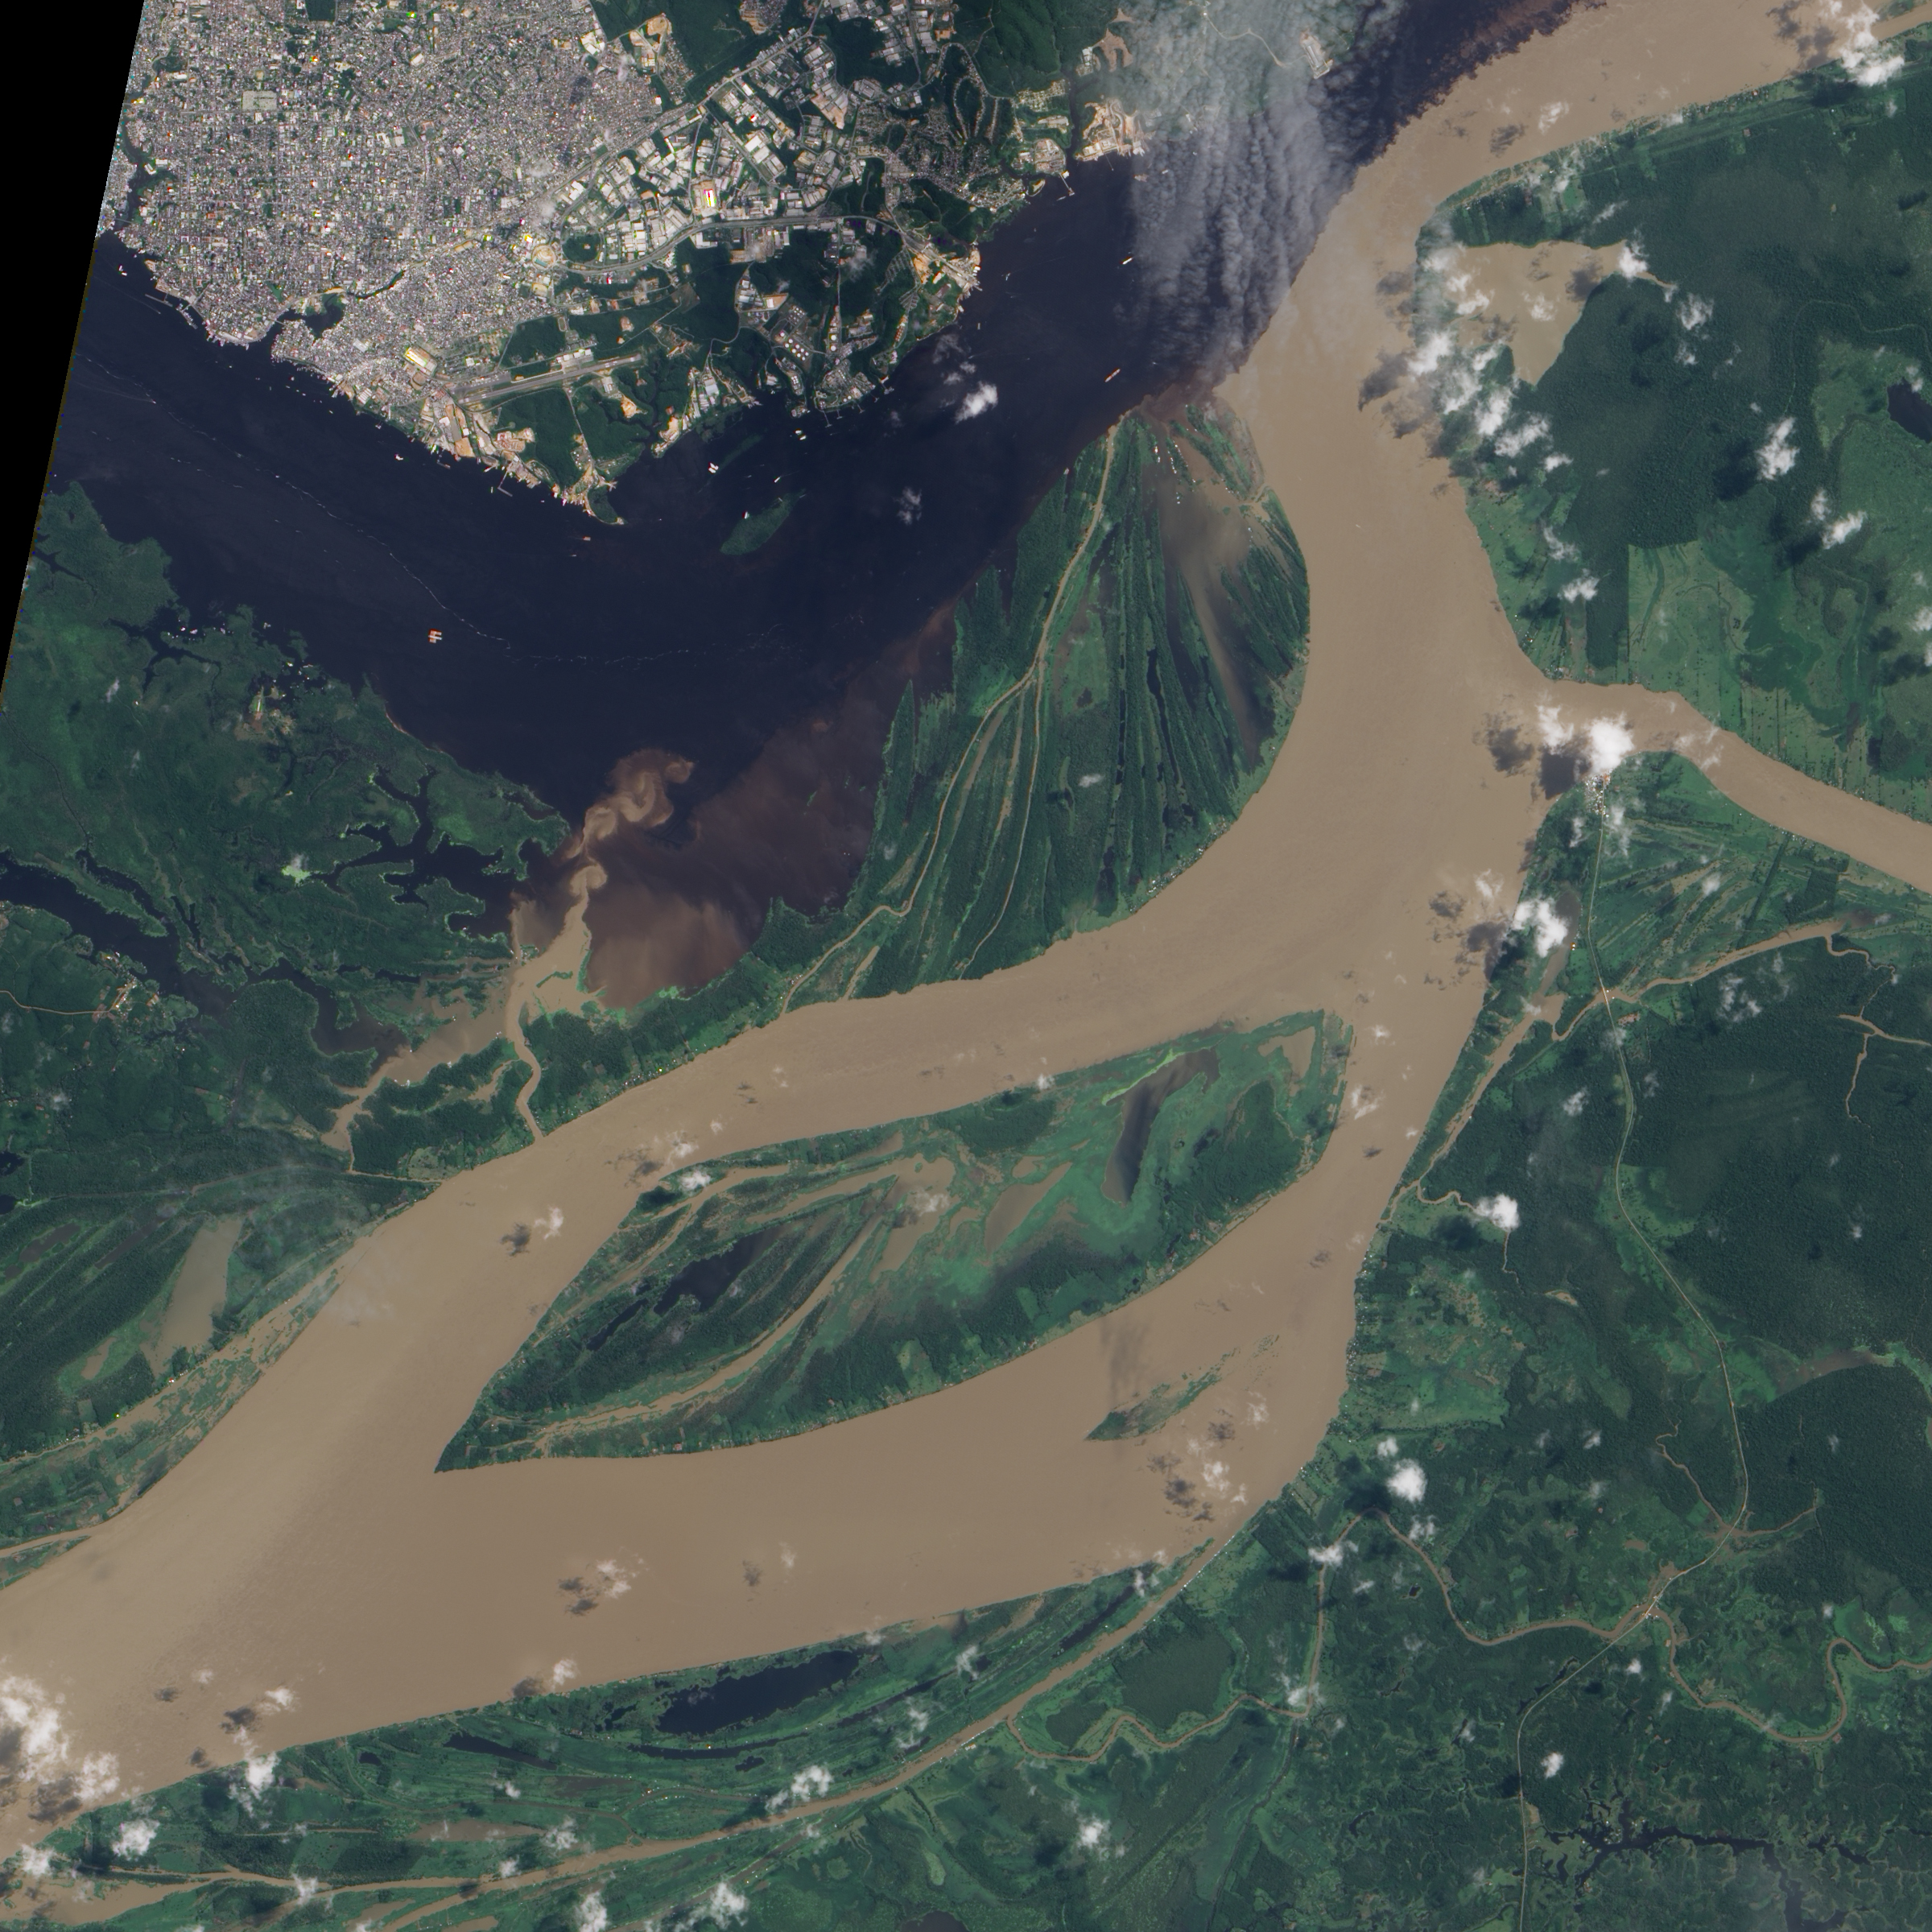 Manaus Brazil  city pictures gallery : Flooding near Manaus, Brazil : Natural Hazards